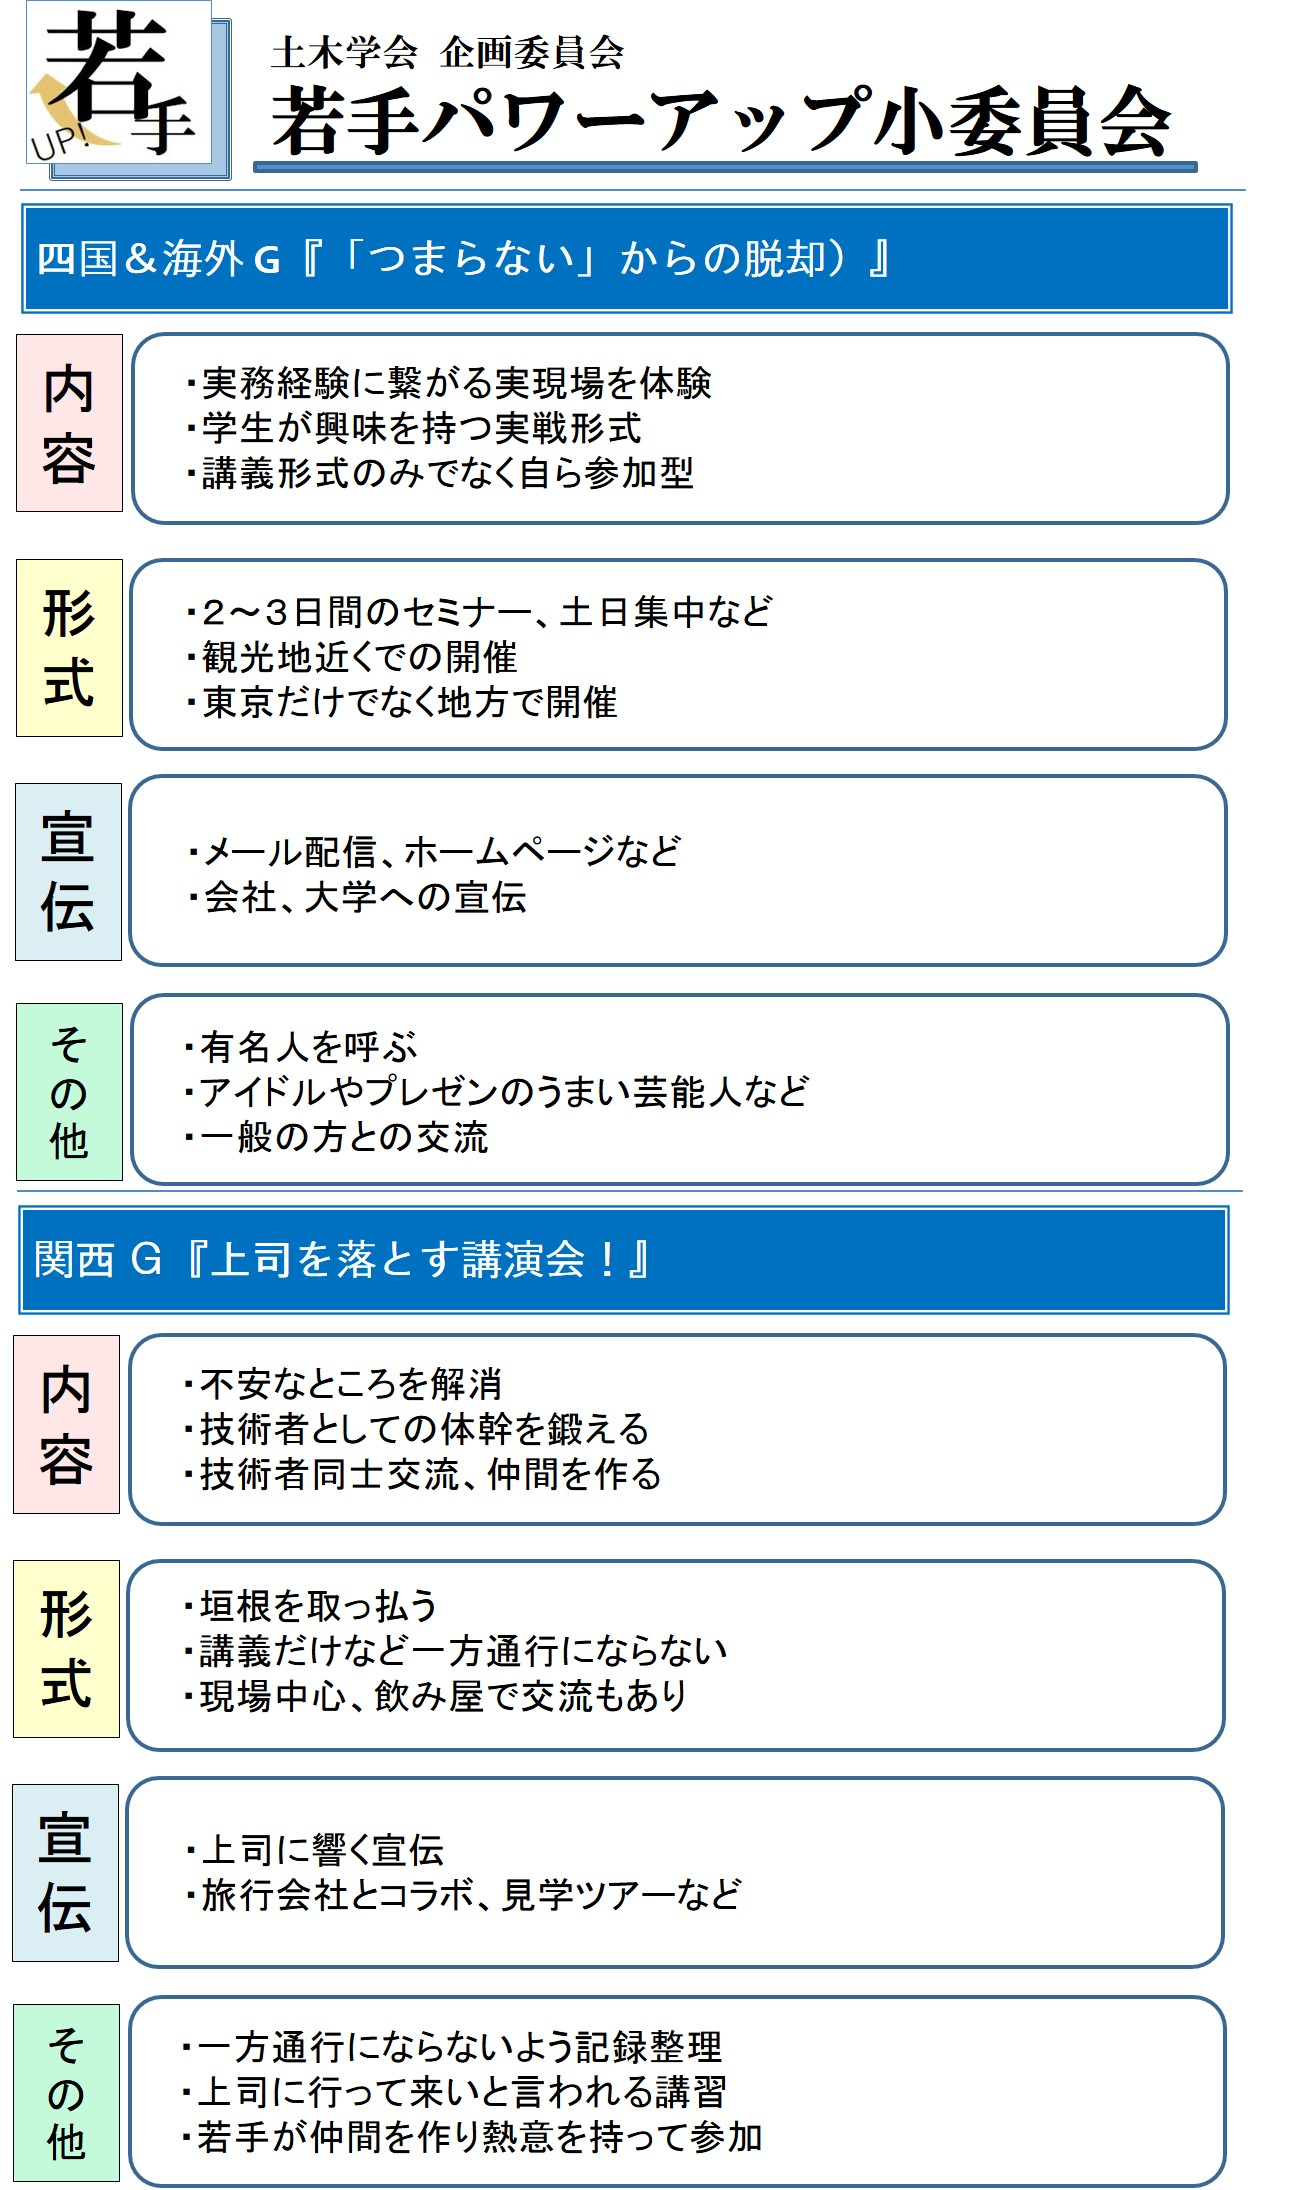 http://committees.jsce.or.jp/kikaku03/system/files/wakateactivity-5.jpg